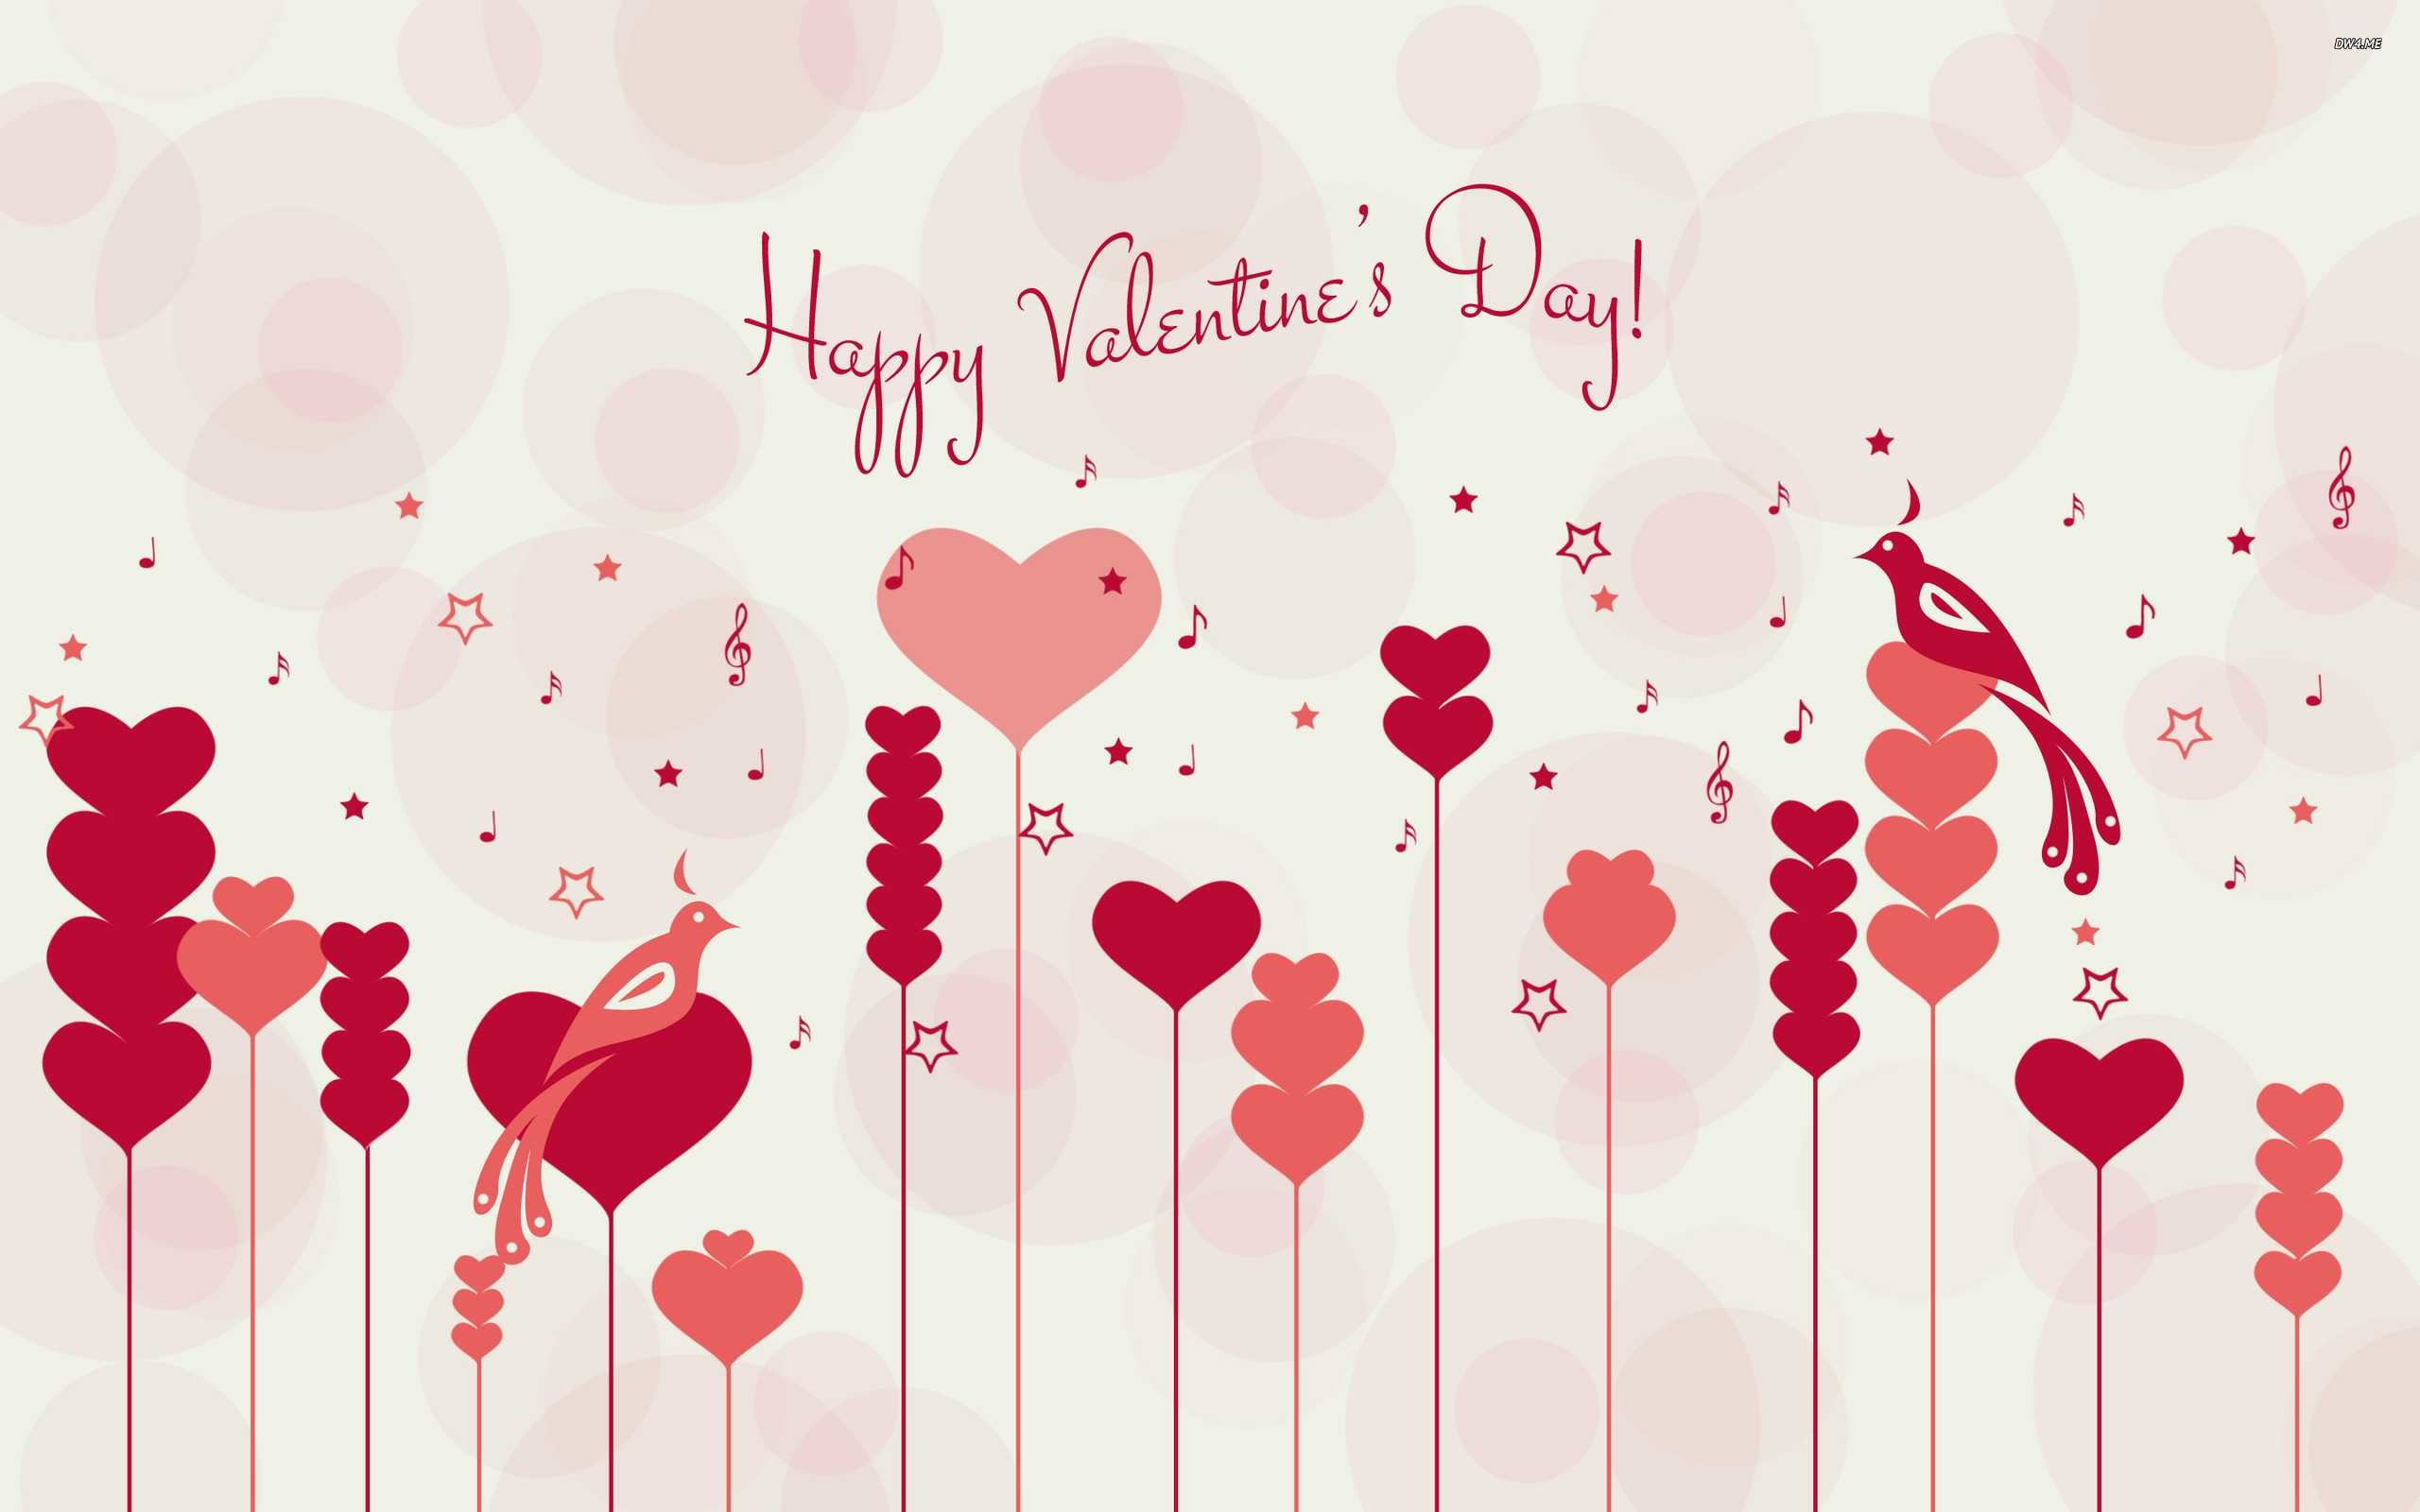 Res   3840x2160   Happy Valentines Day Images 2017 Hd Wallpapers 2560x1600